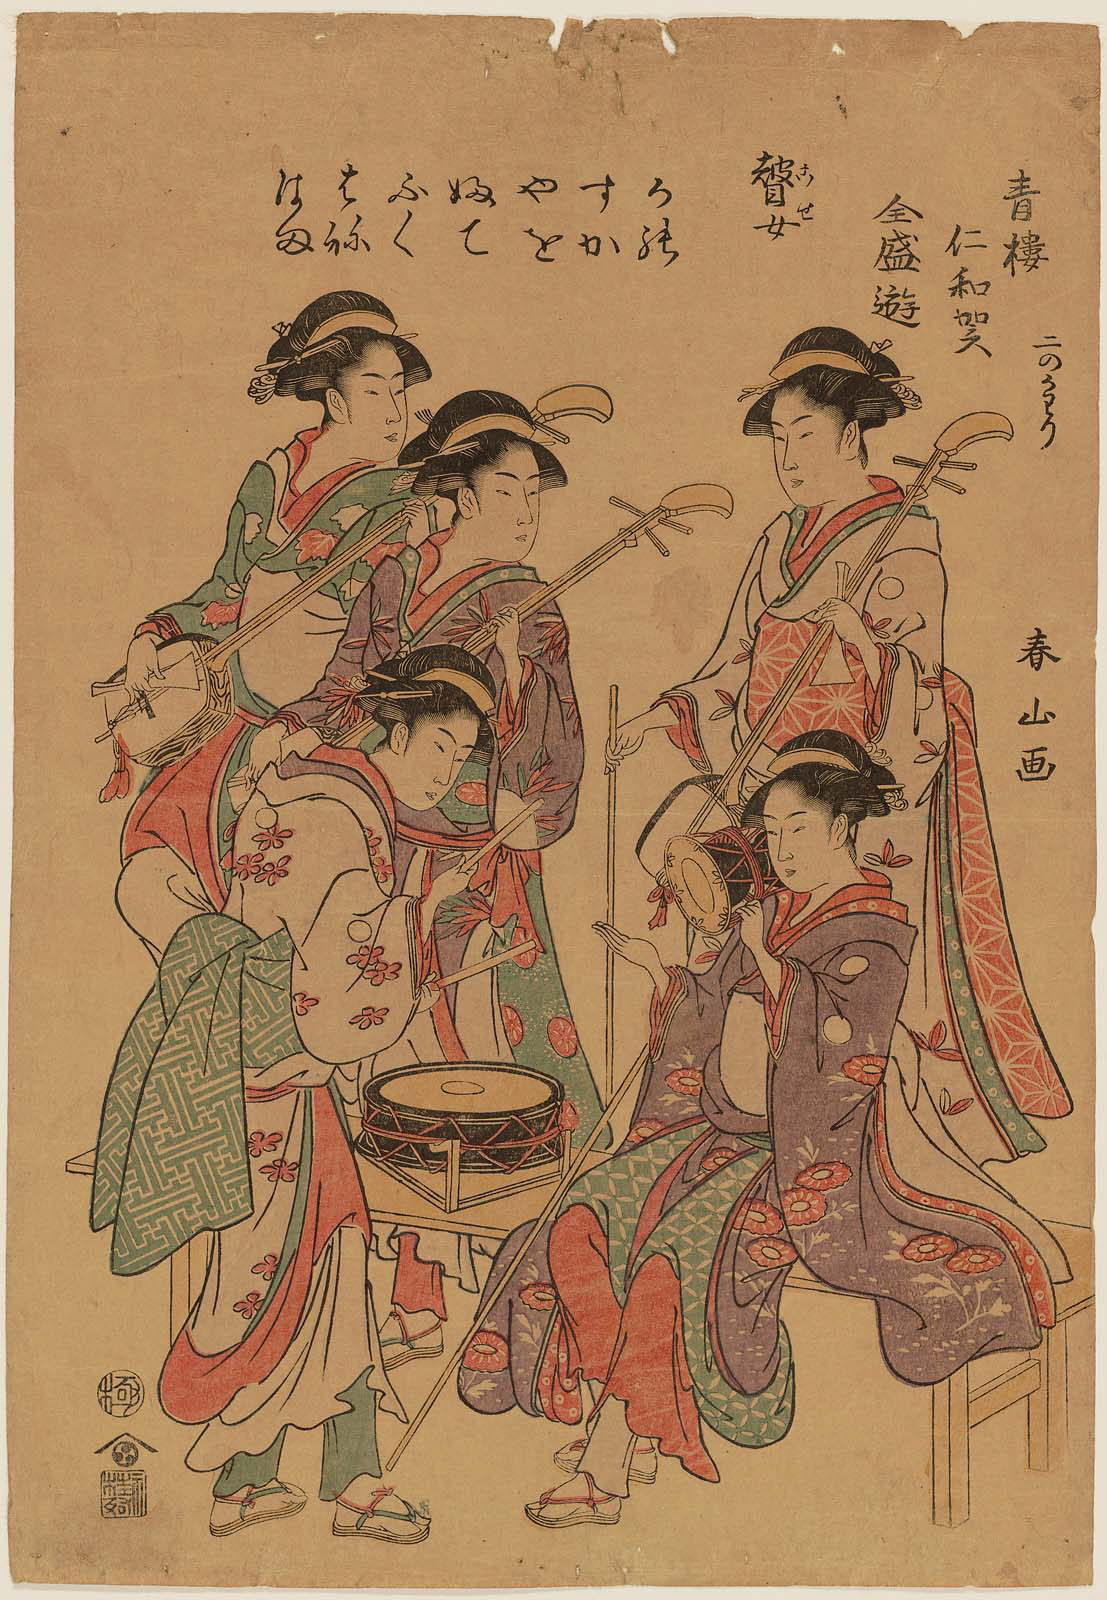 A visibly old drawing of five Japanese women in traditional dress playing musical instruments. Three play the biwa (lute) and two play drums. One of the women is seated and there are Japanese characters above the women and in the right-hand corner